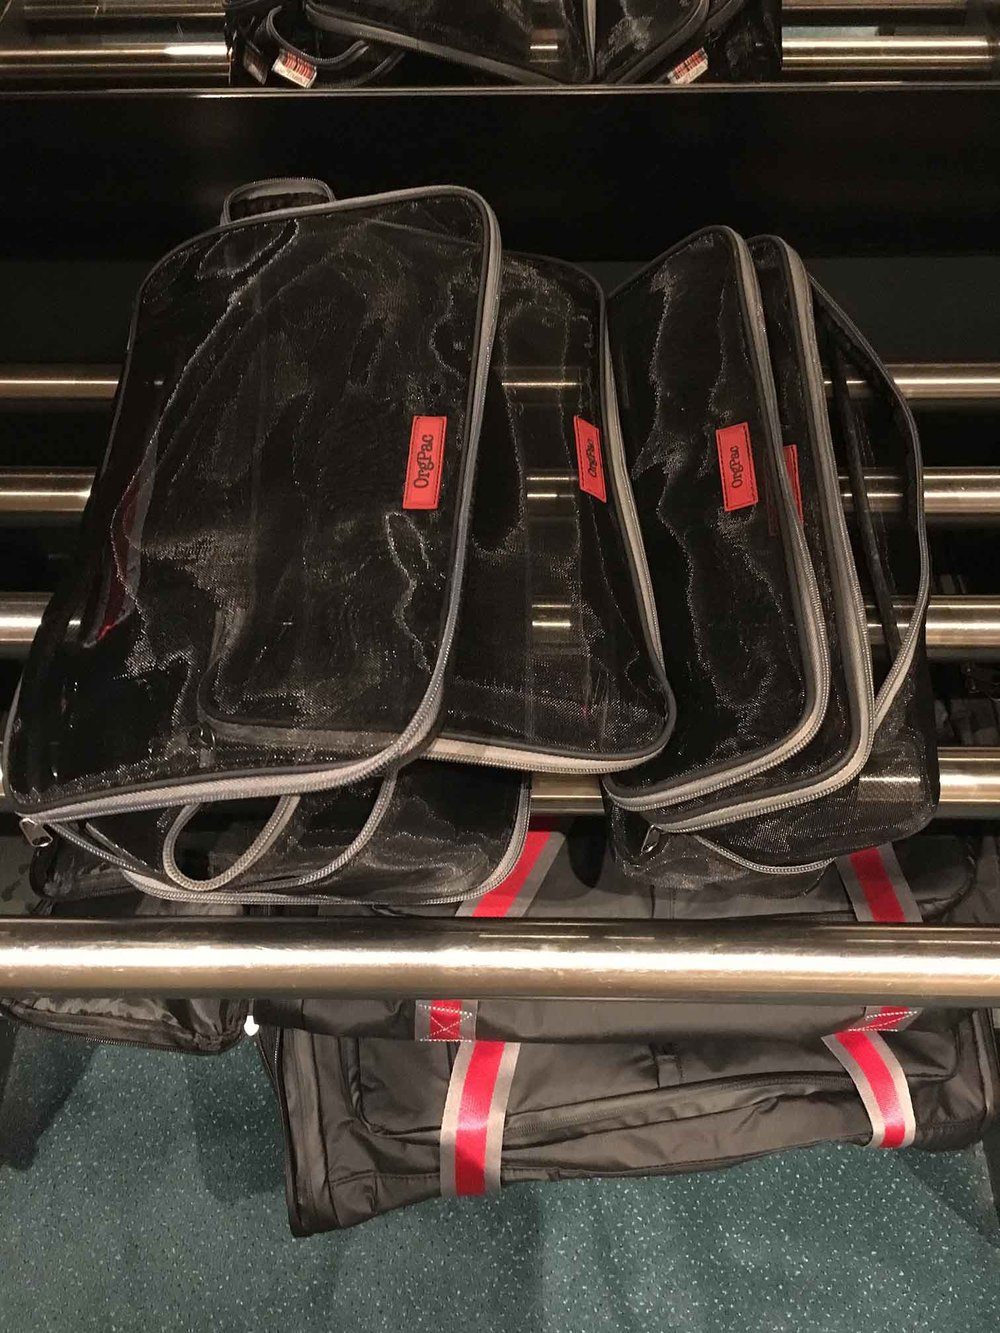 2 medium, 2 slim OrgPacs! Enough to contain a week's travel packing! Get x-large LeanPac products & easily store them away on arrival as they are all lightweight & take up minimal space.